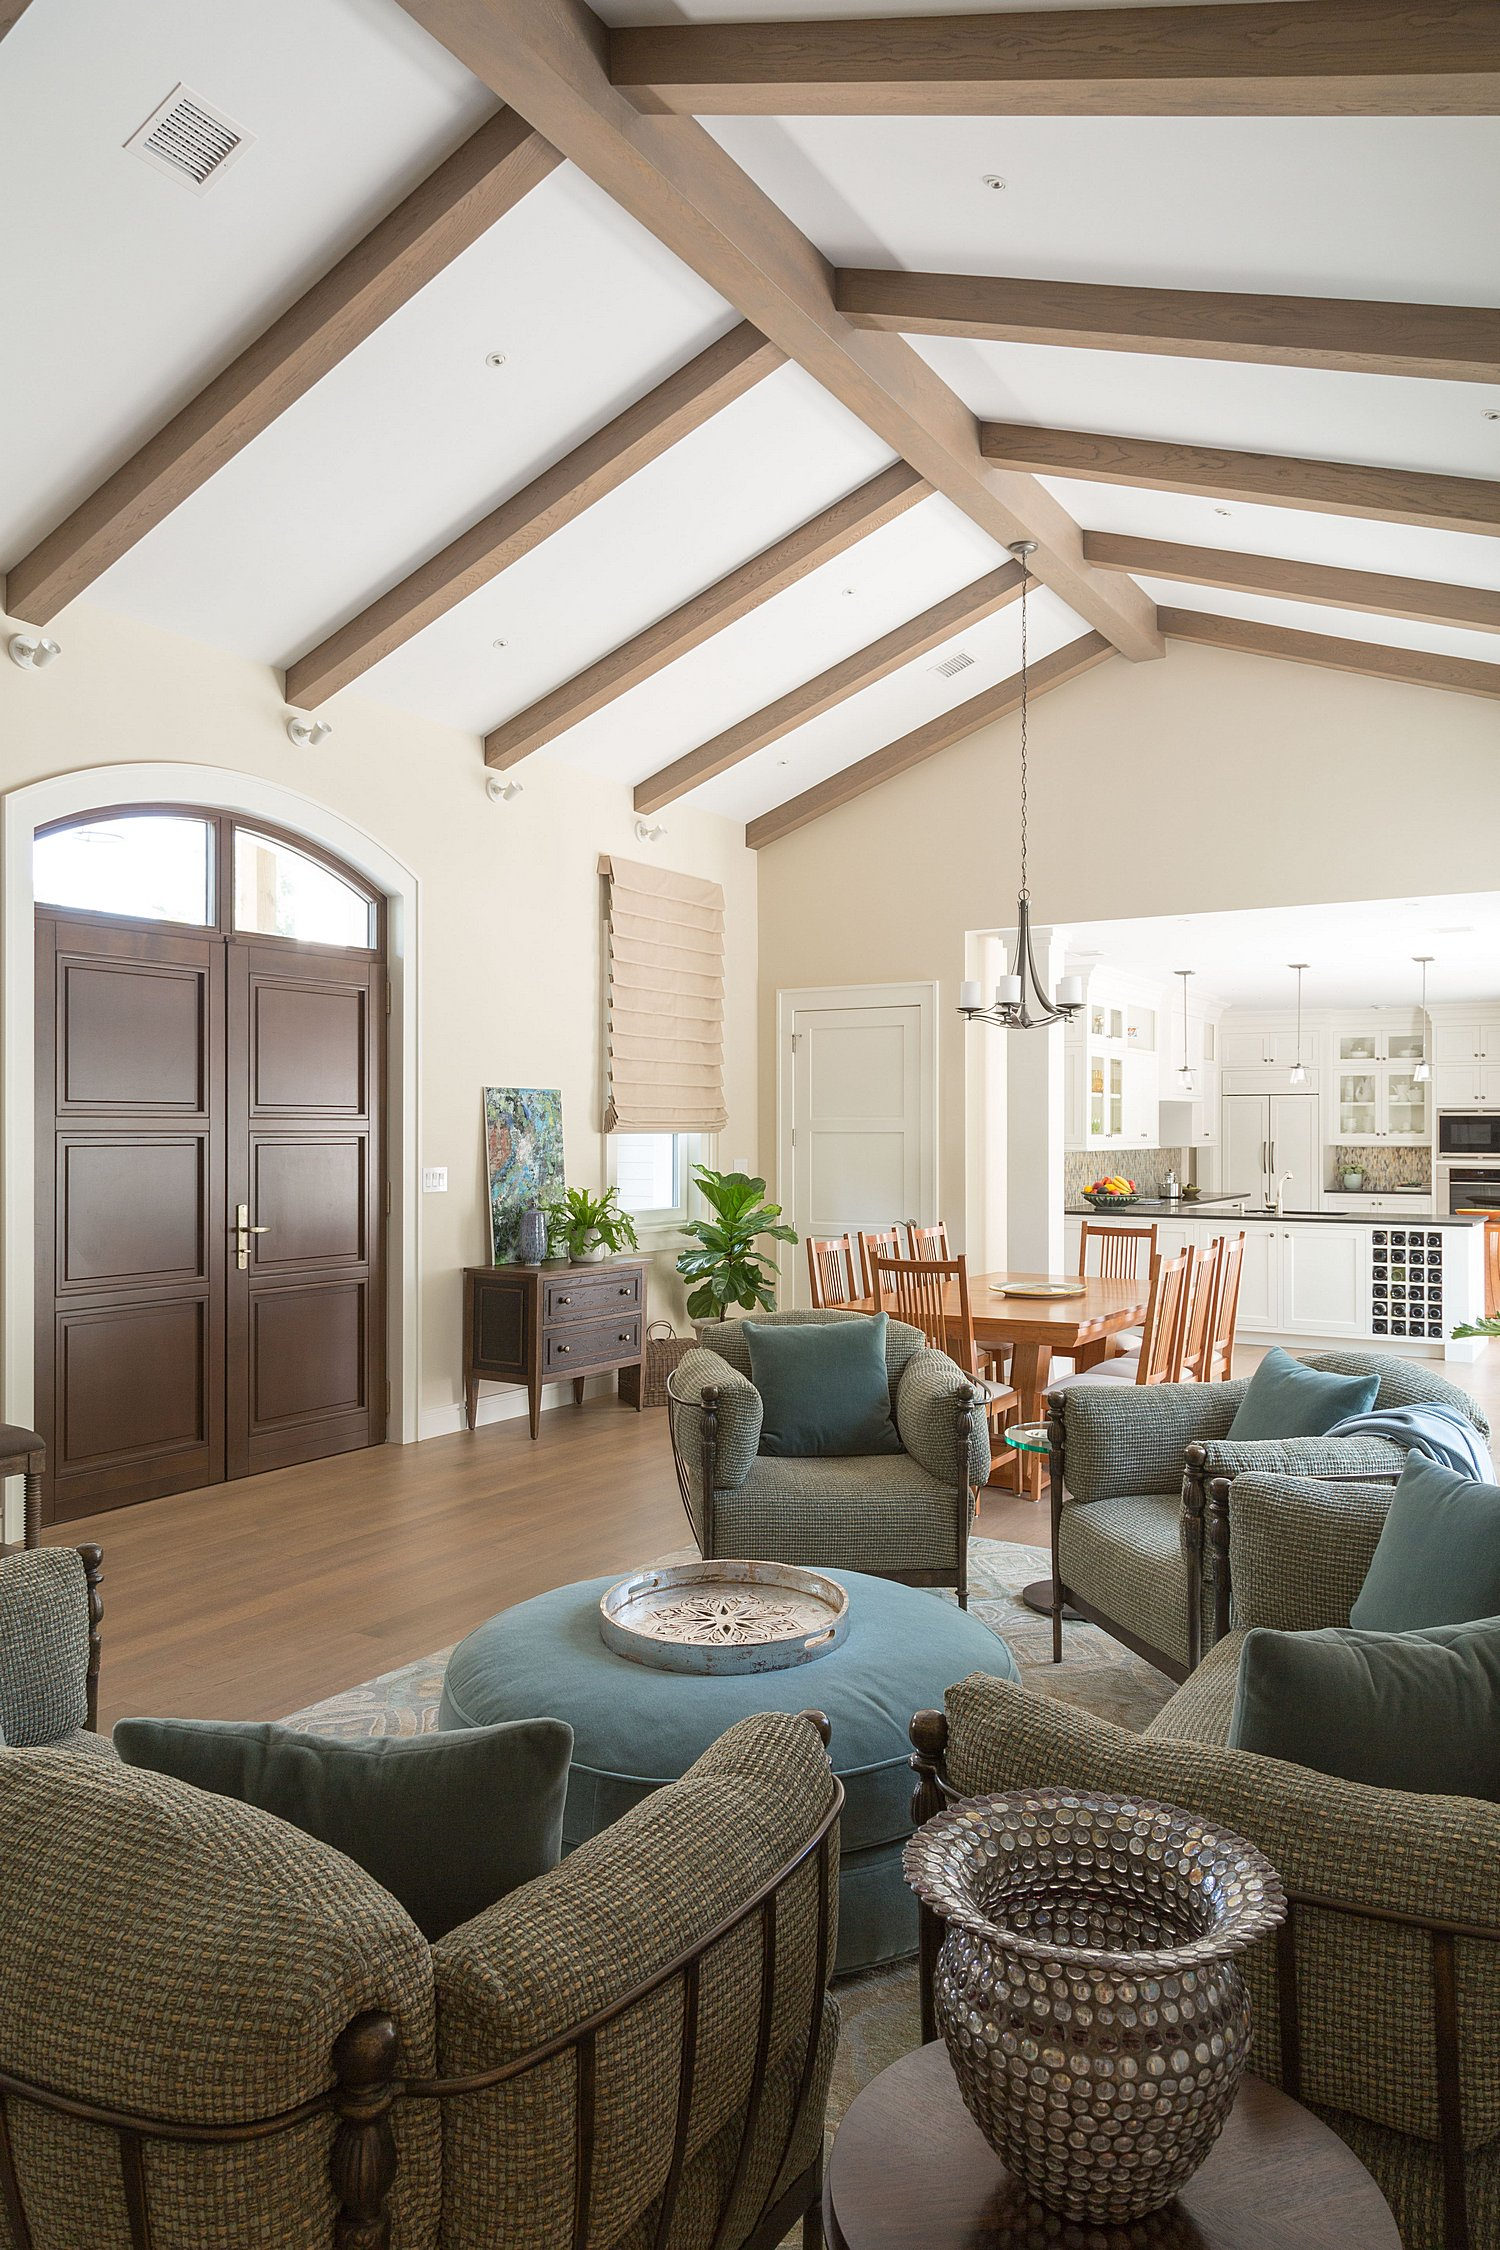 Modern living room with exposed beams